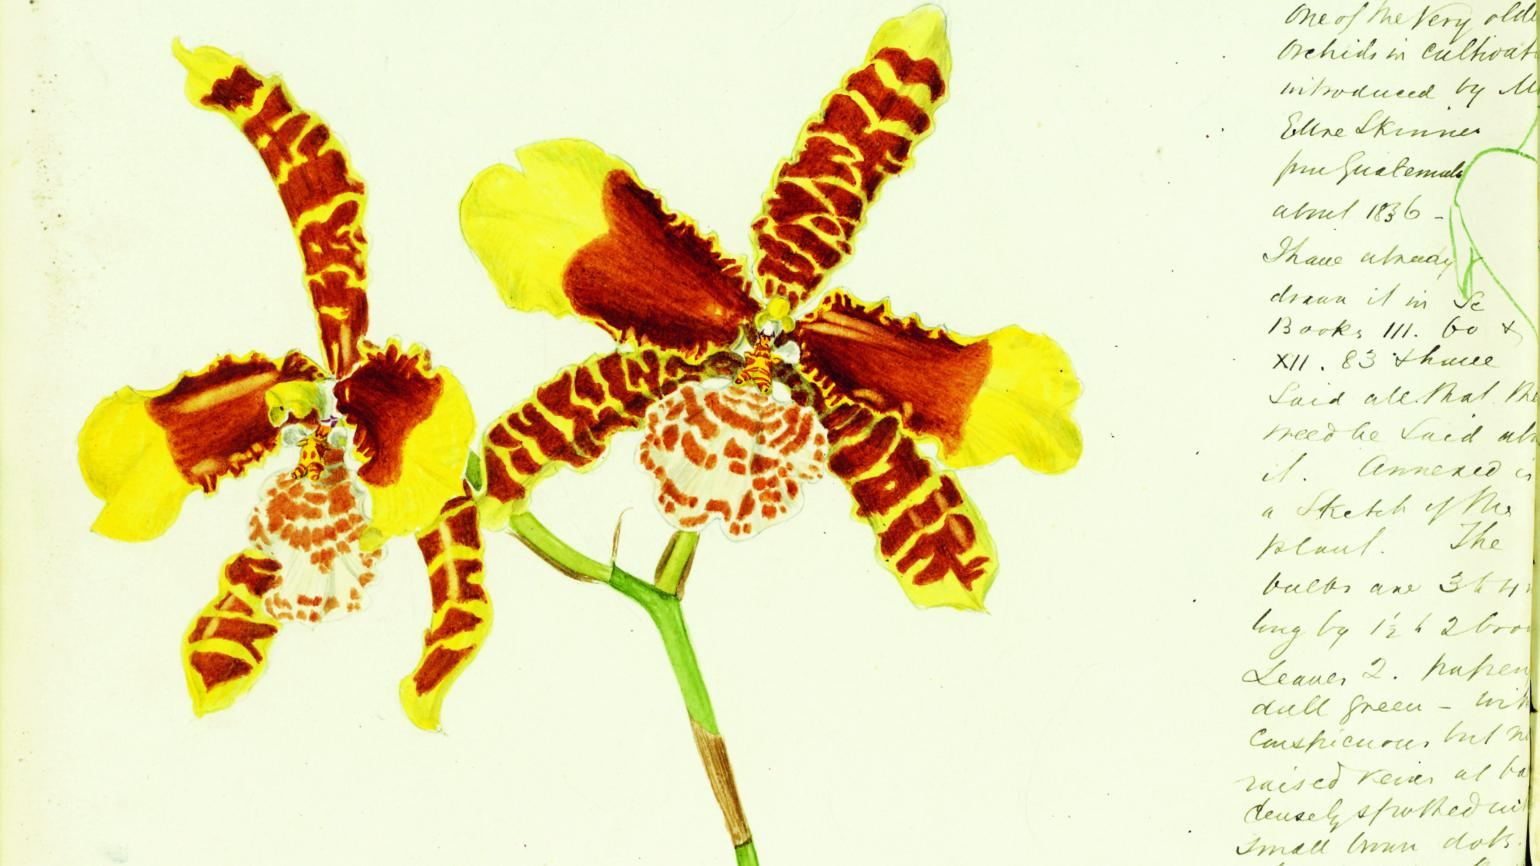 Rossioglossum grande, labelled as Odontoglossum grande from John Day's Scrapbook, 1883